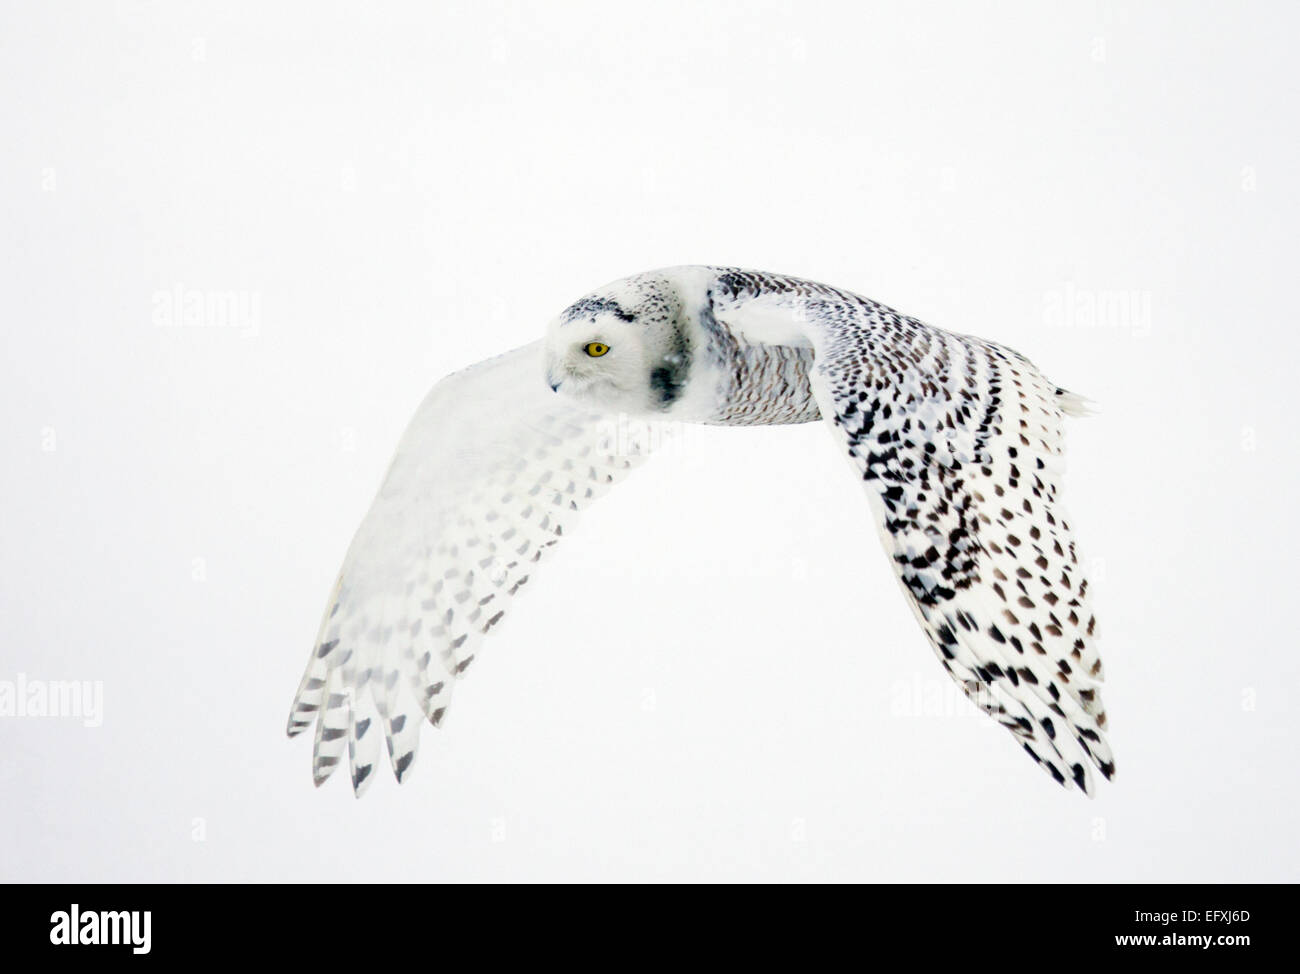 Snowy Owl Flying in Snow Fall - Stock Image